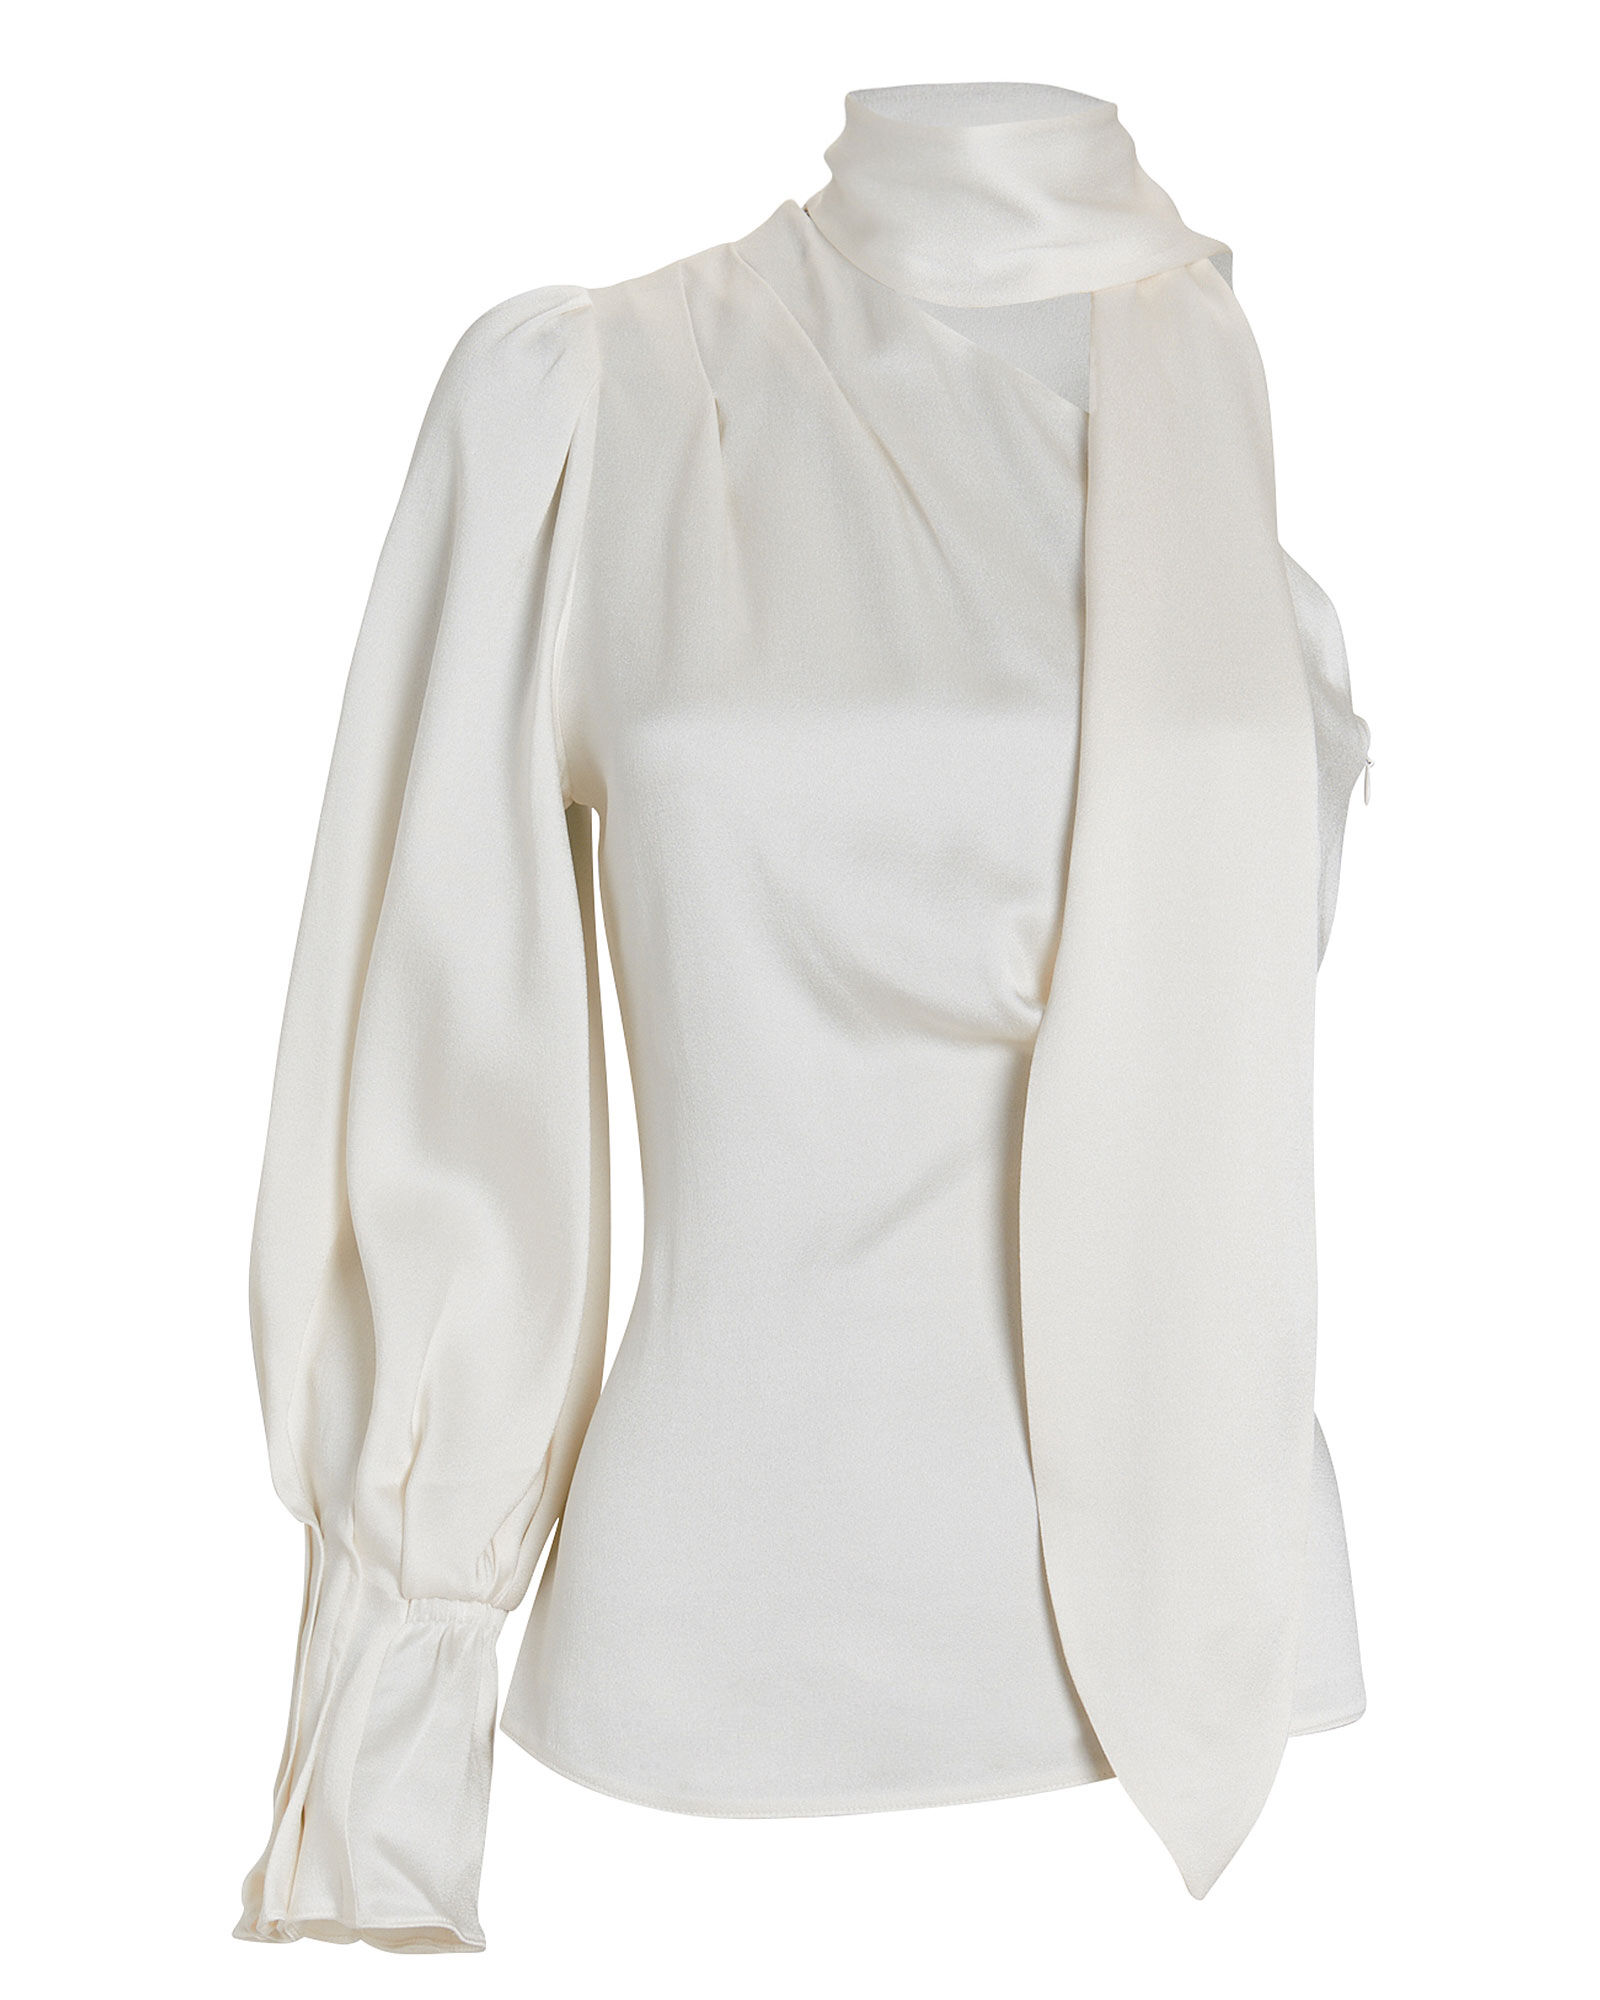 Satin One-Shoulder Tie-Neck Blouse, IVORY, hi-res